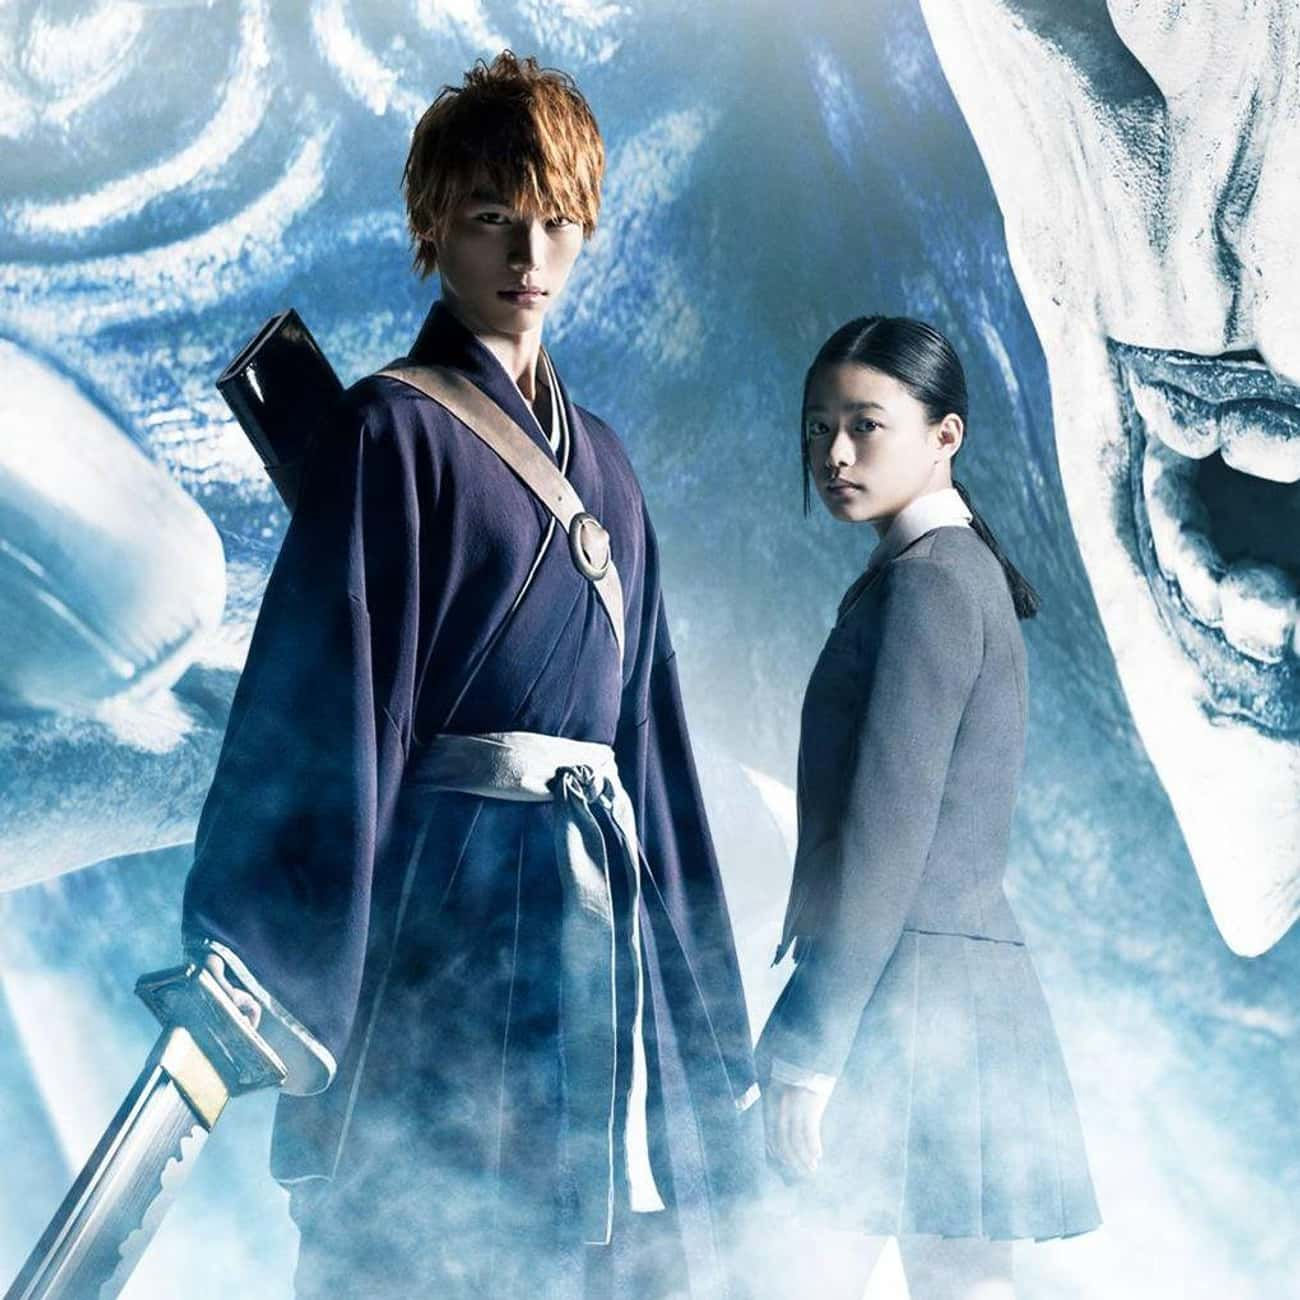 Bleach is listed (or ranked) 3 on the list The Best Monster Movies Streaming on Netflix